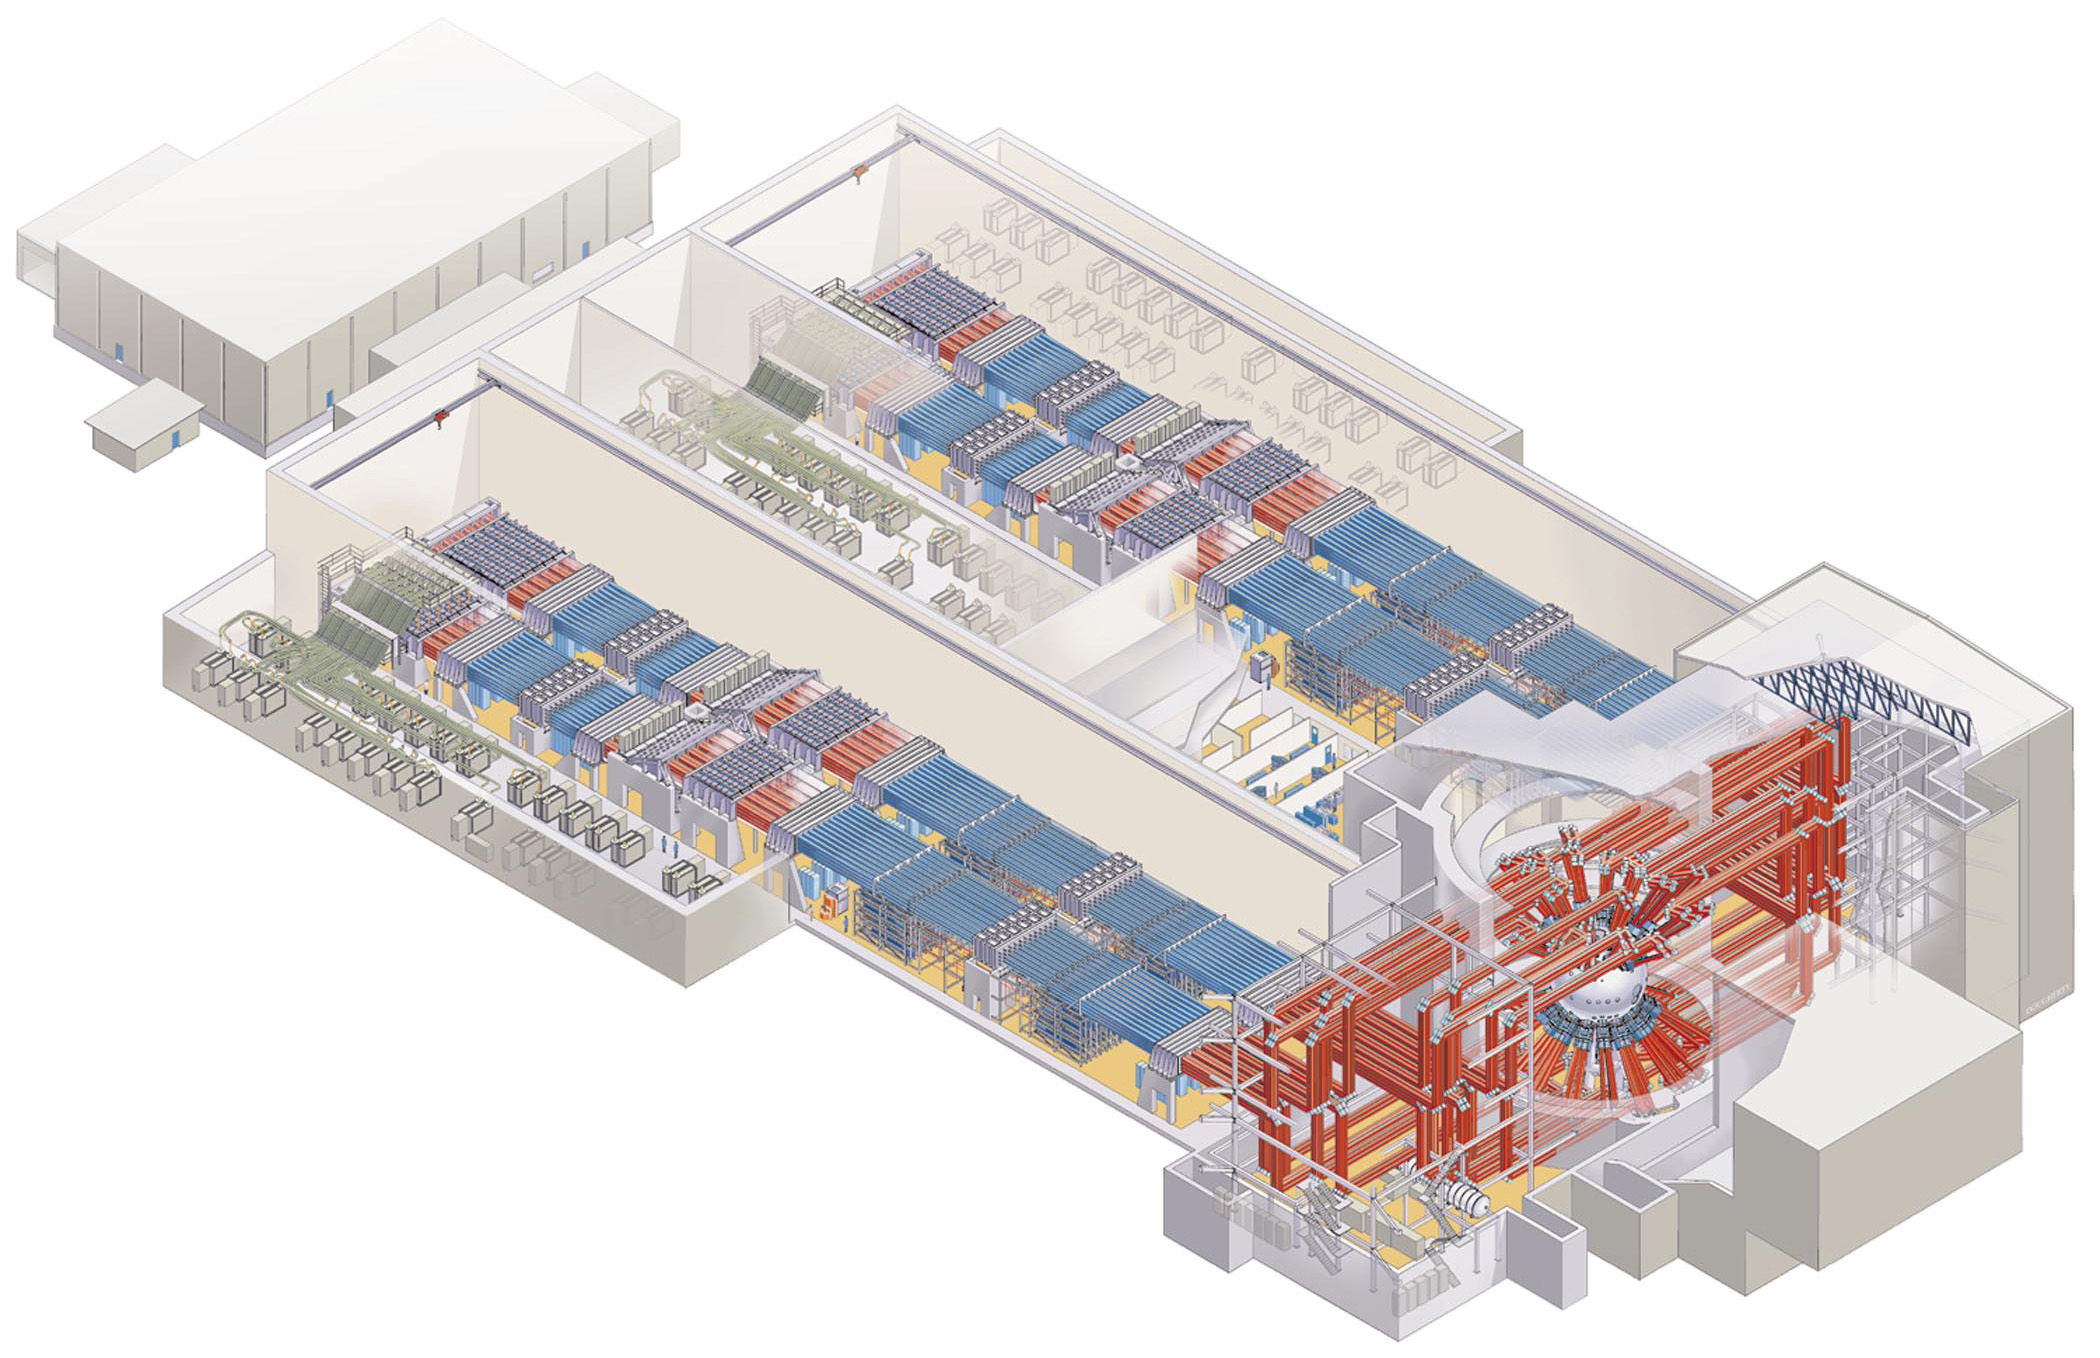 File:NIF building layout.png - Wikimedia Commons